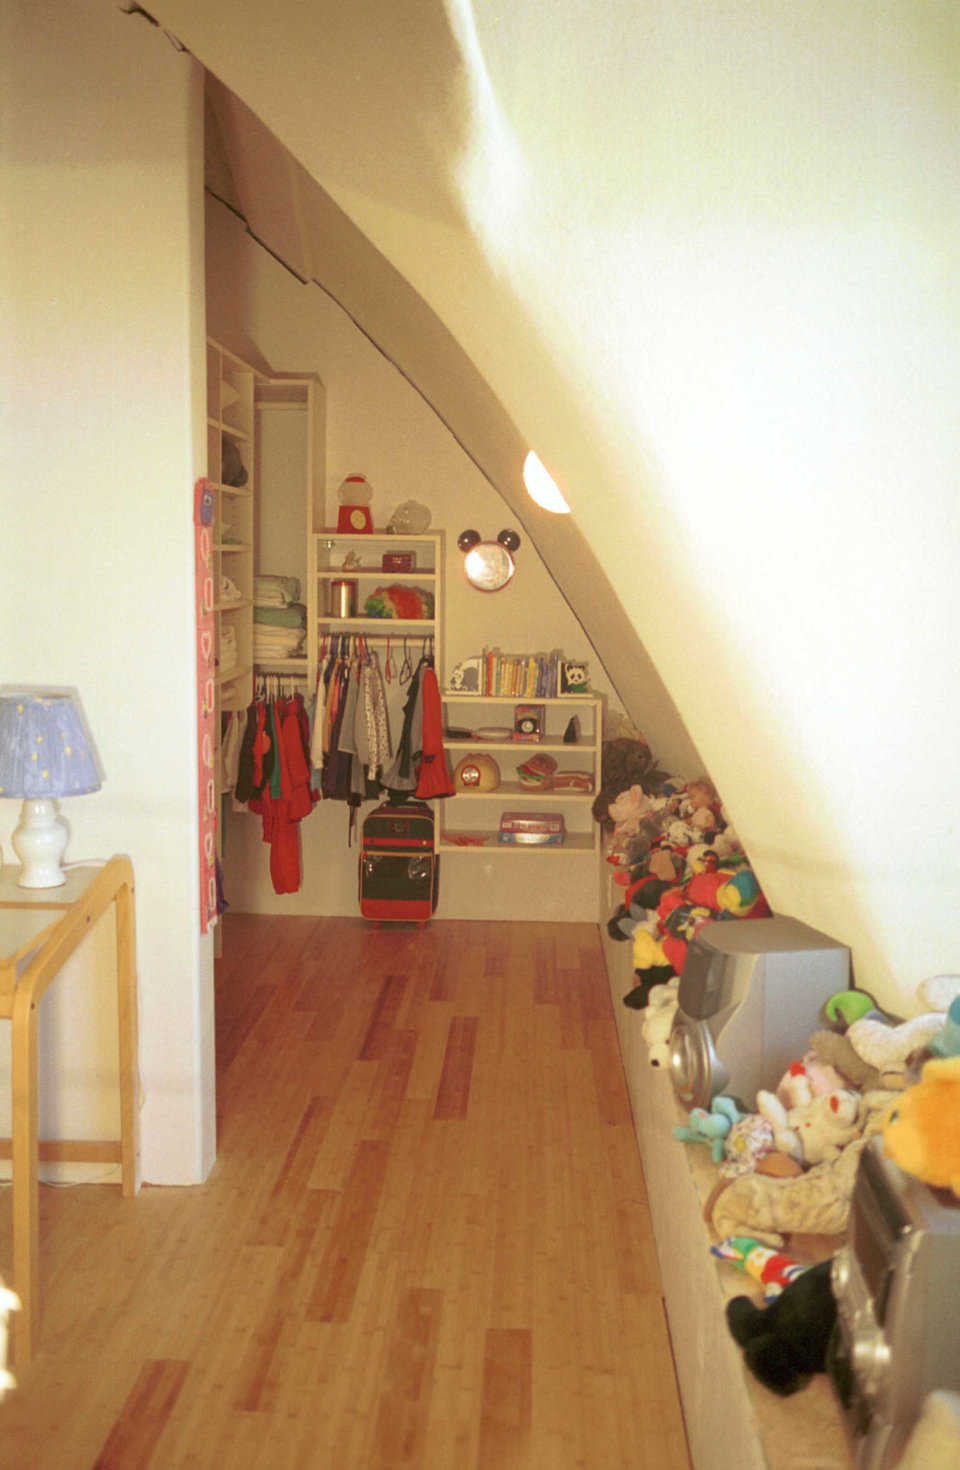 Meili's stuff — She has ample storage space for clothes, books and toys.